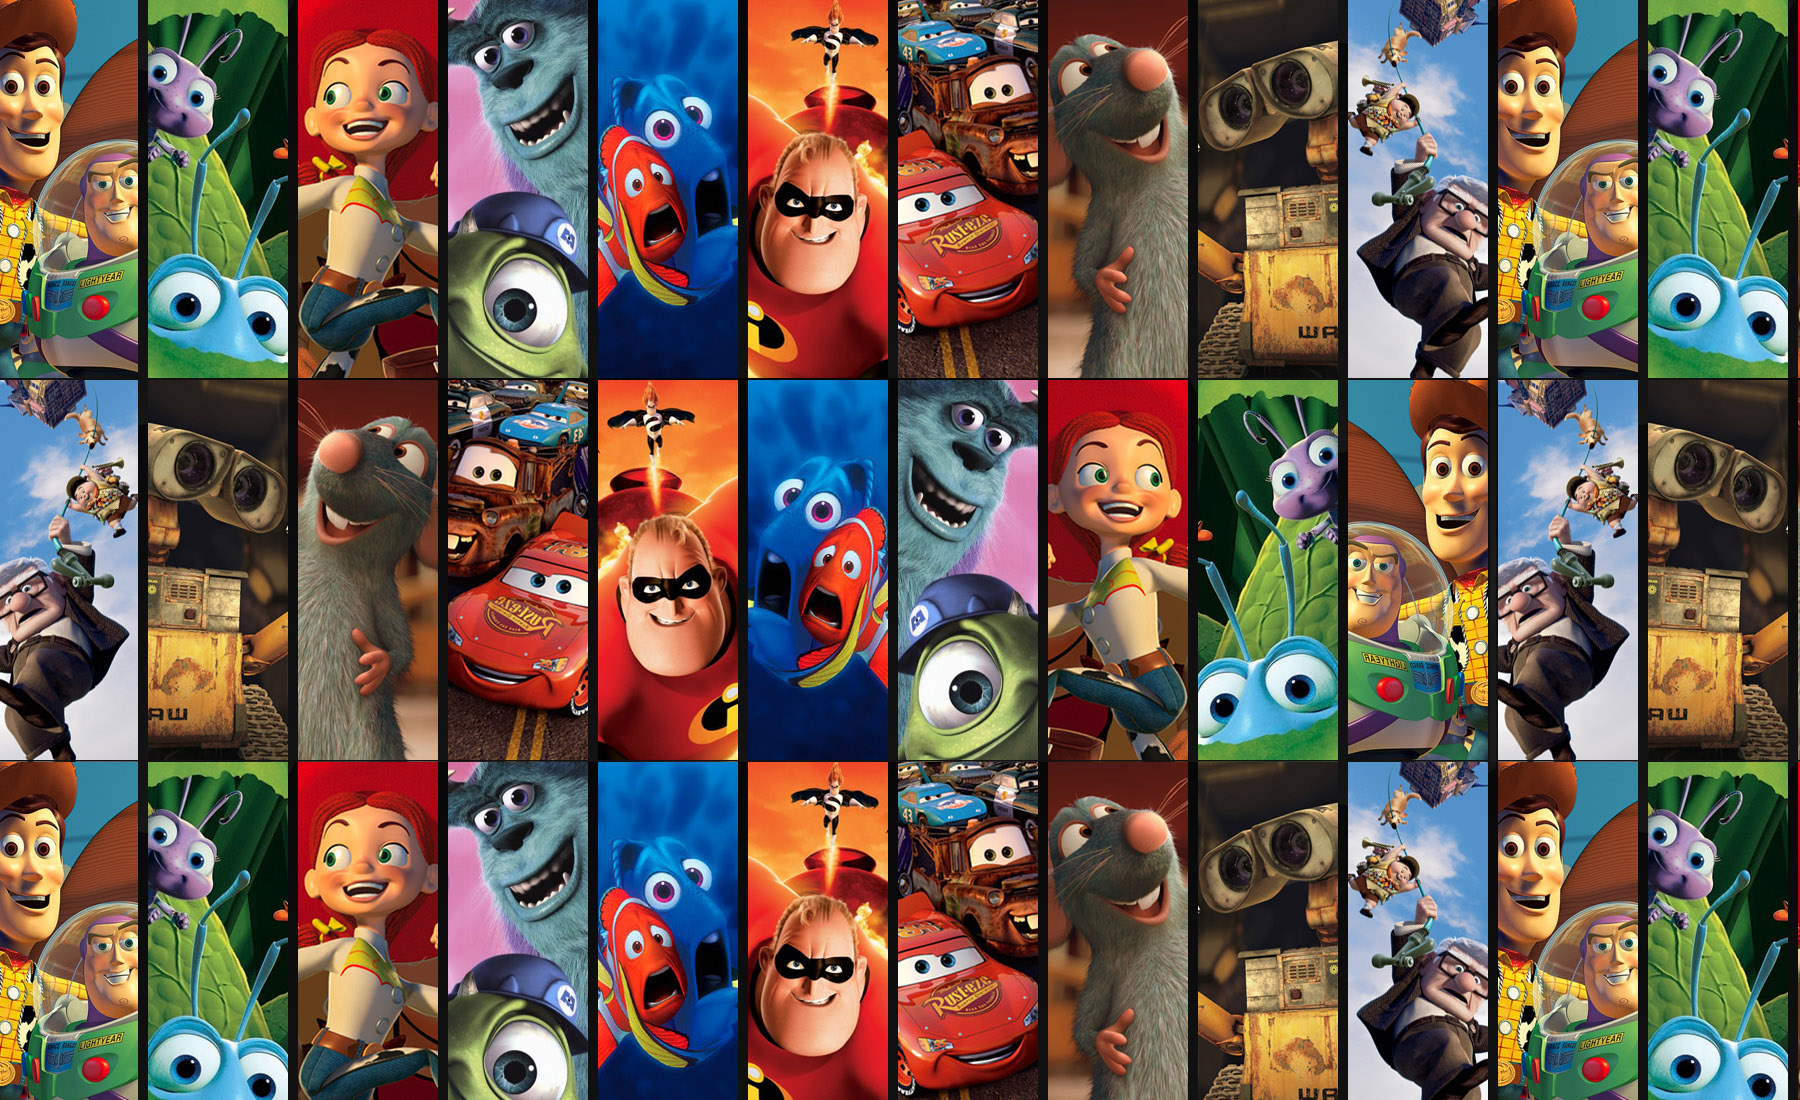 The pixar story features exclusive interviews with some of the key